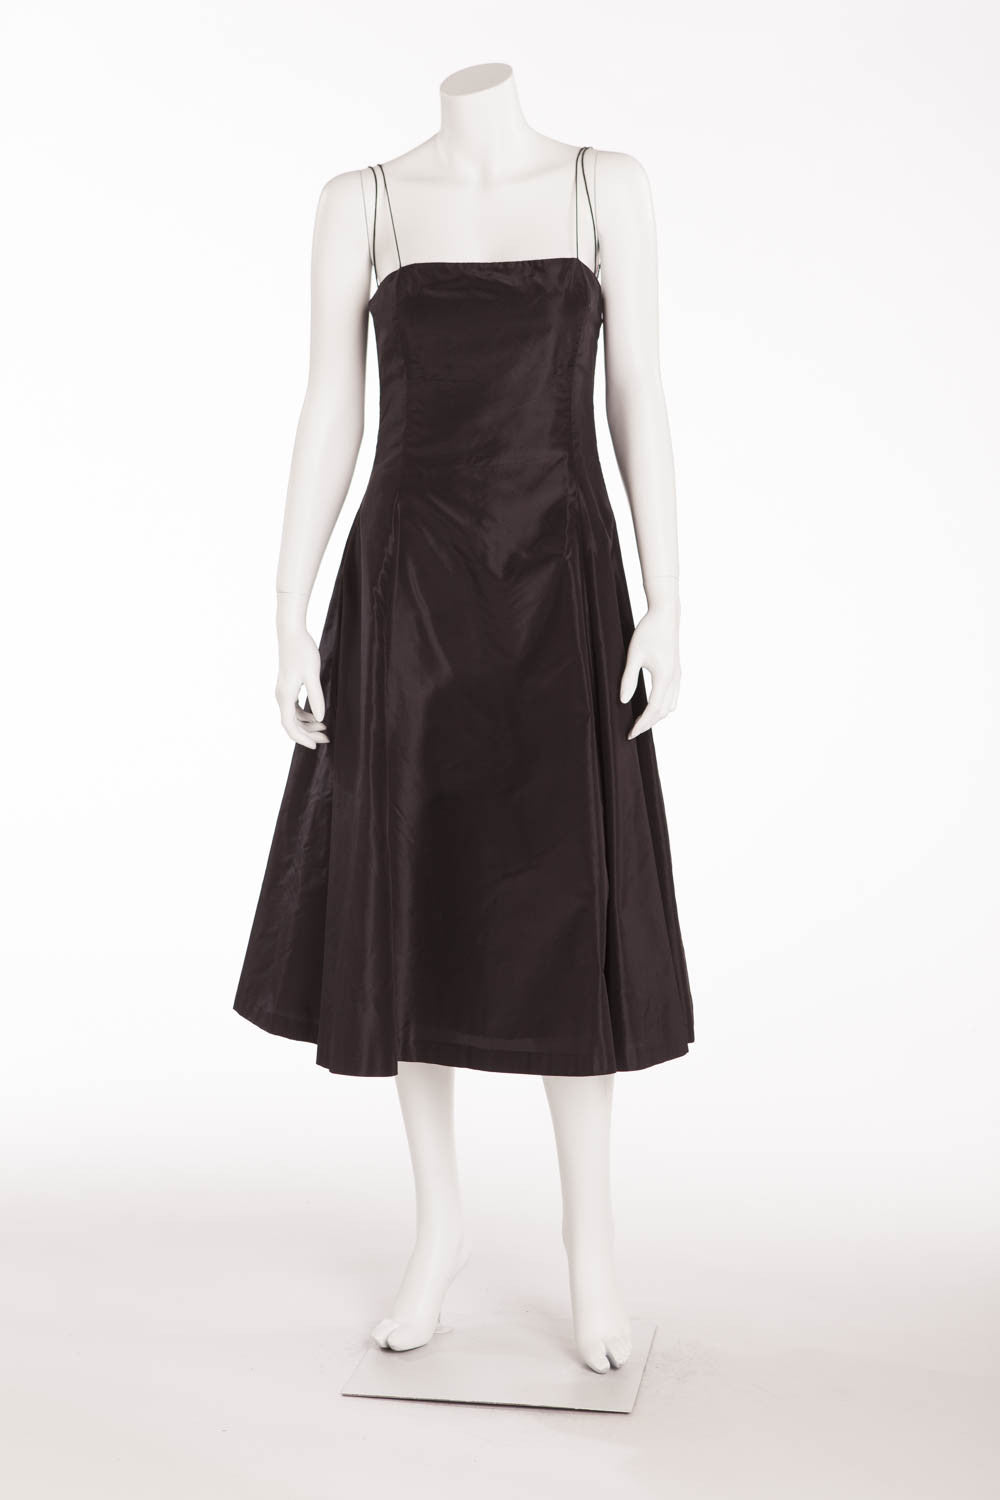 Ralph Lauren - Black Silk Dress with Slip - US 8